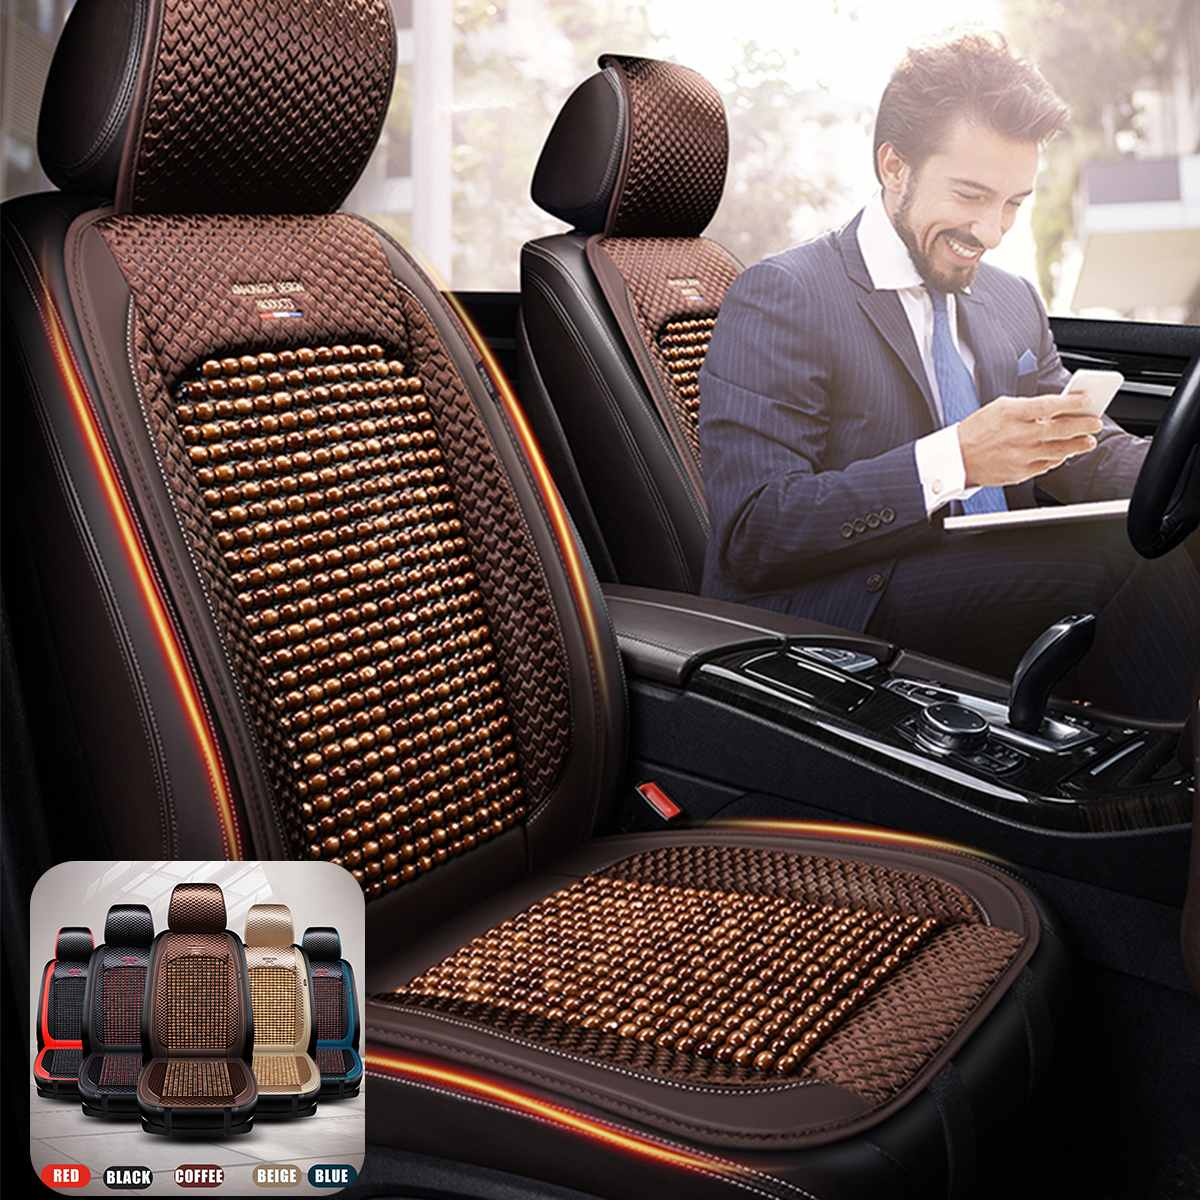 Universal Summer Cooling Auto Front Seat Cushion Protector Beads Leather + Bamboo Car Seat Covers Breathable